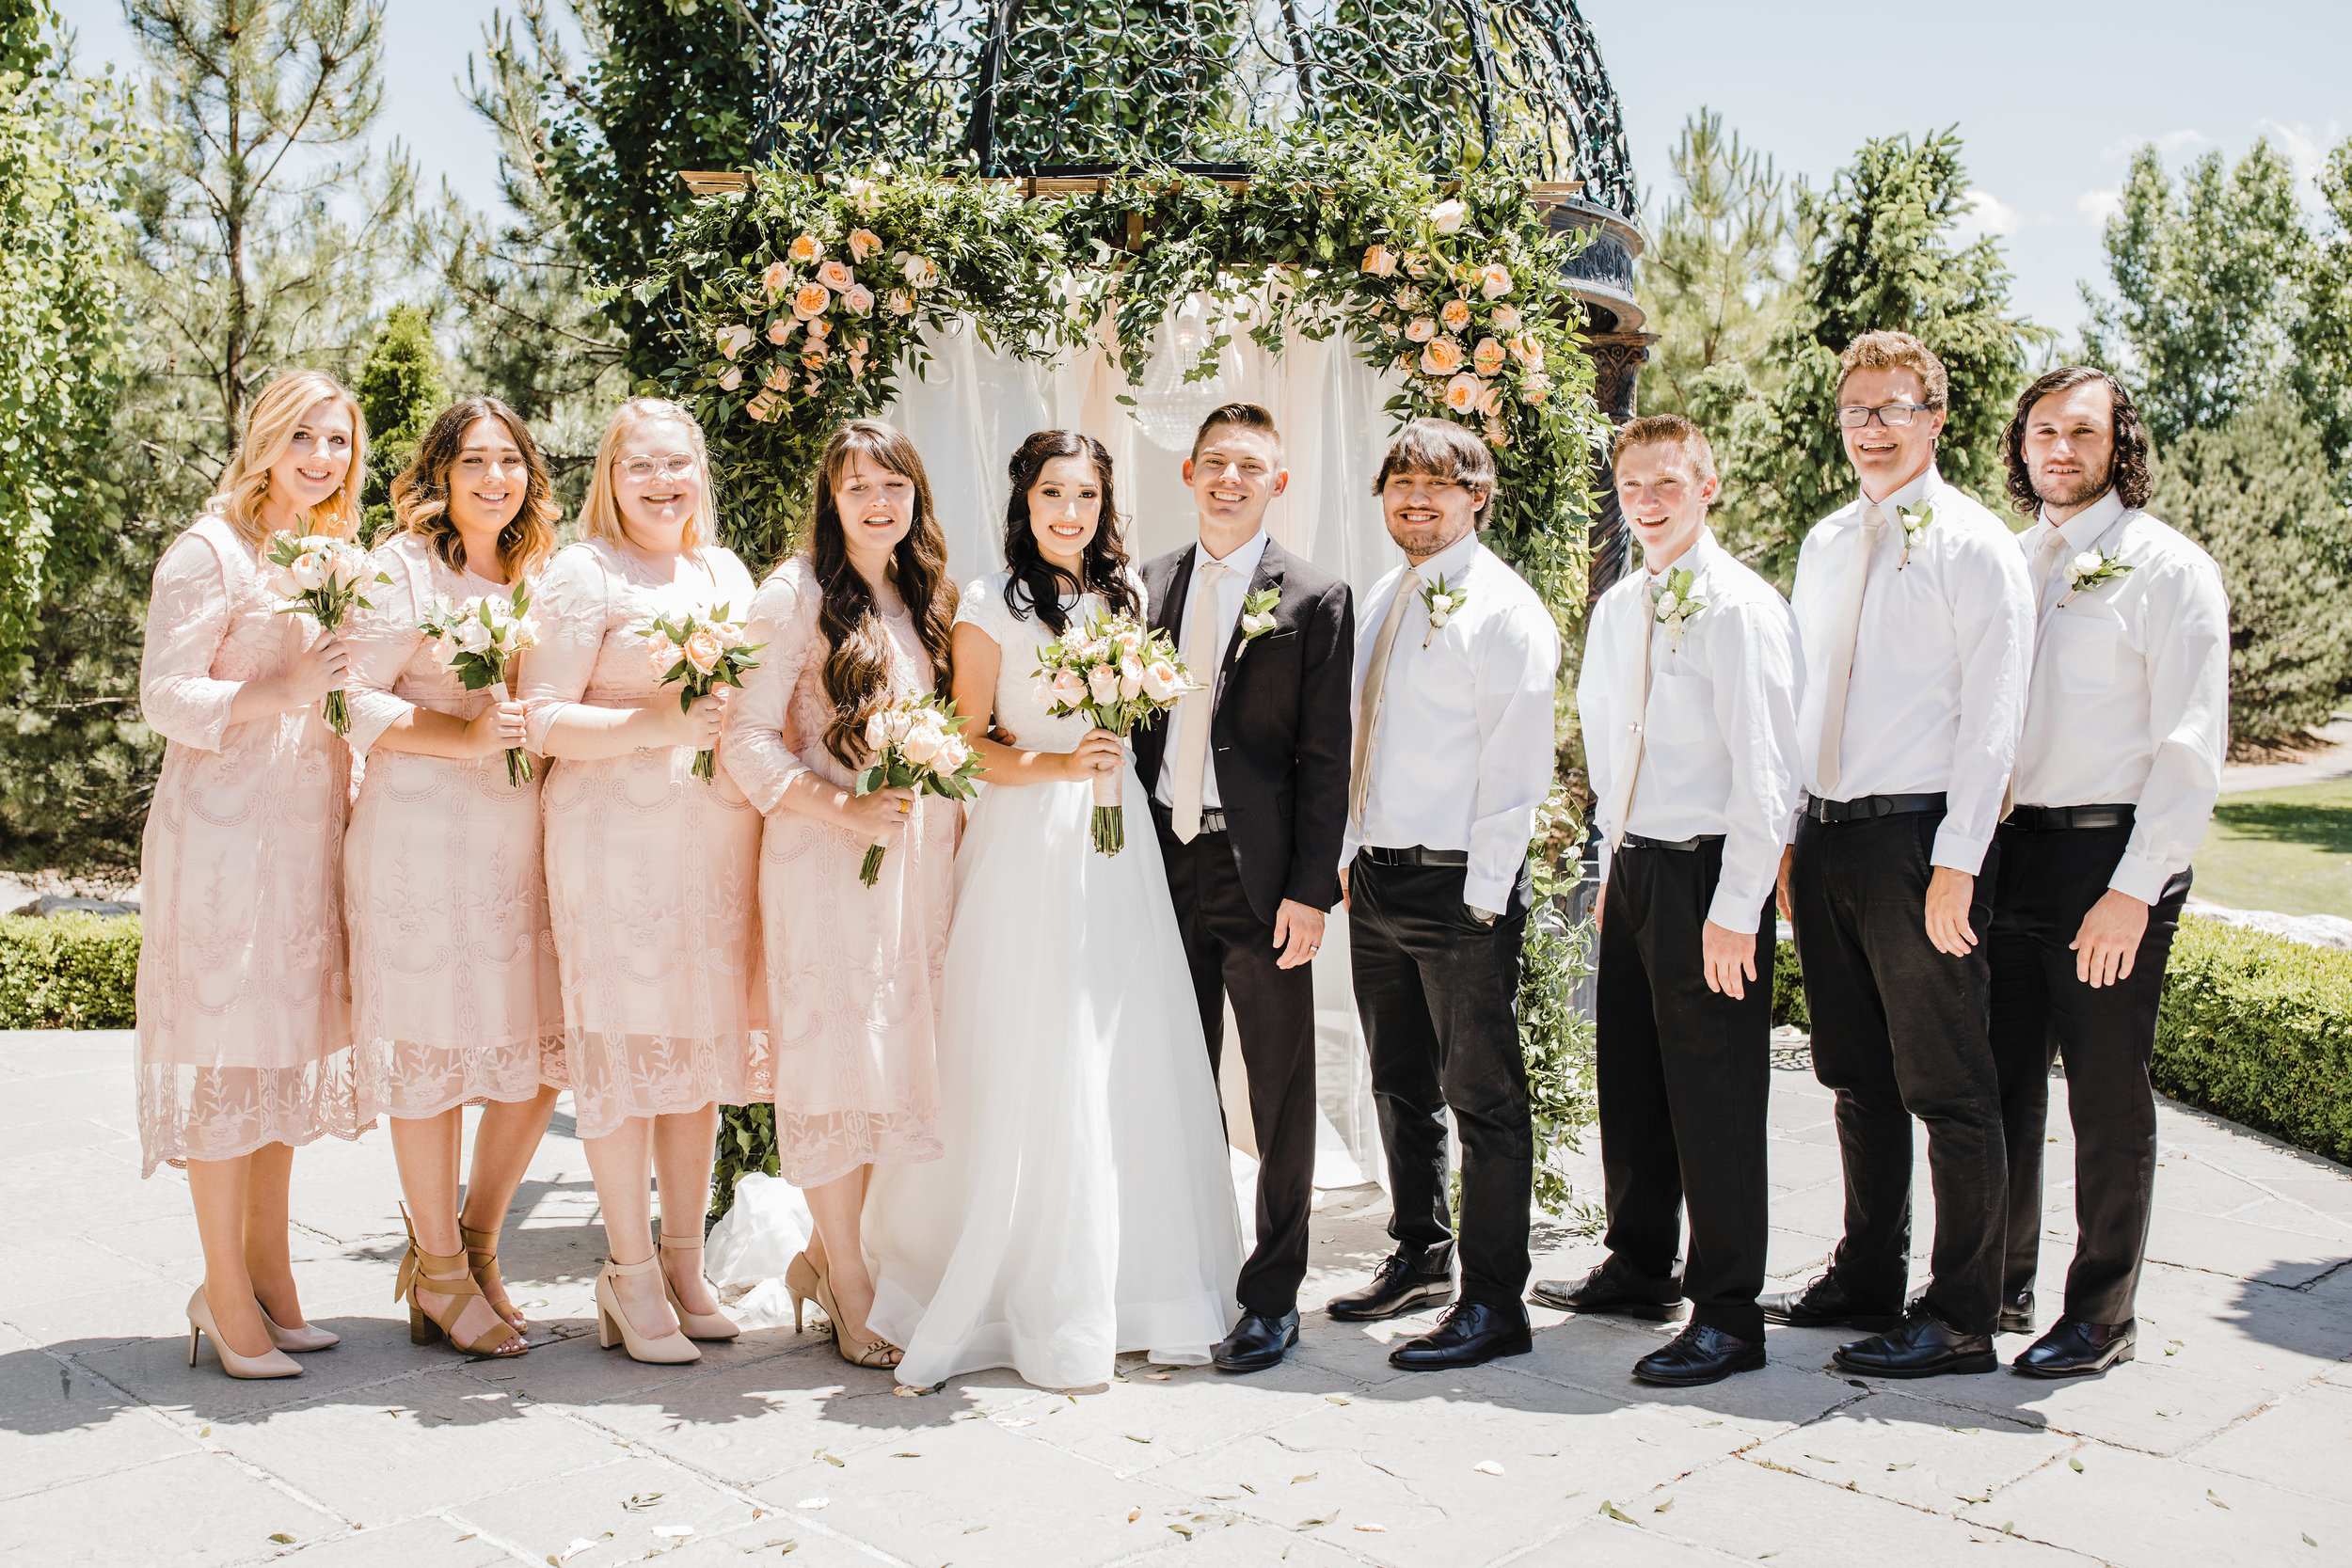 wedding party in front of wedding arch blush roses bridesmaids and groomsmen orem utah wedding day photography